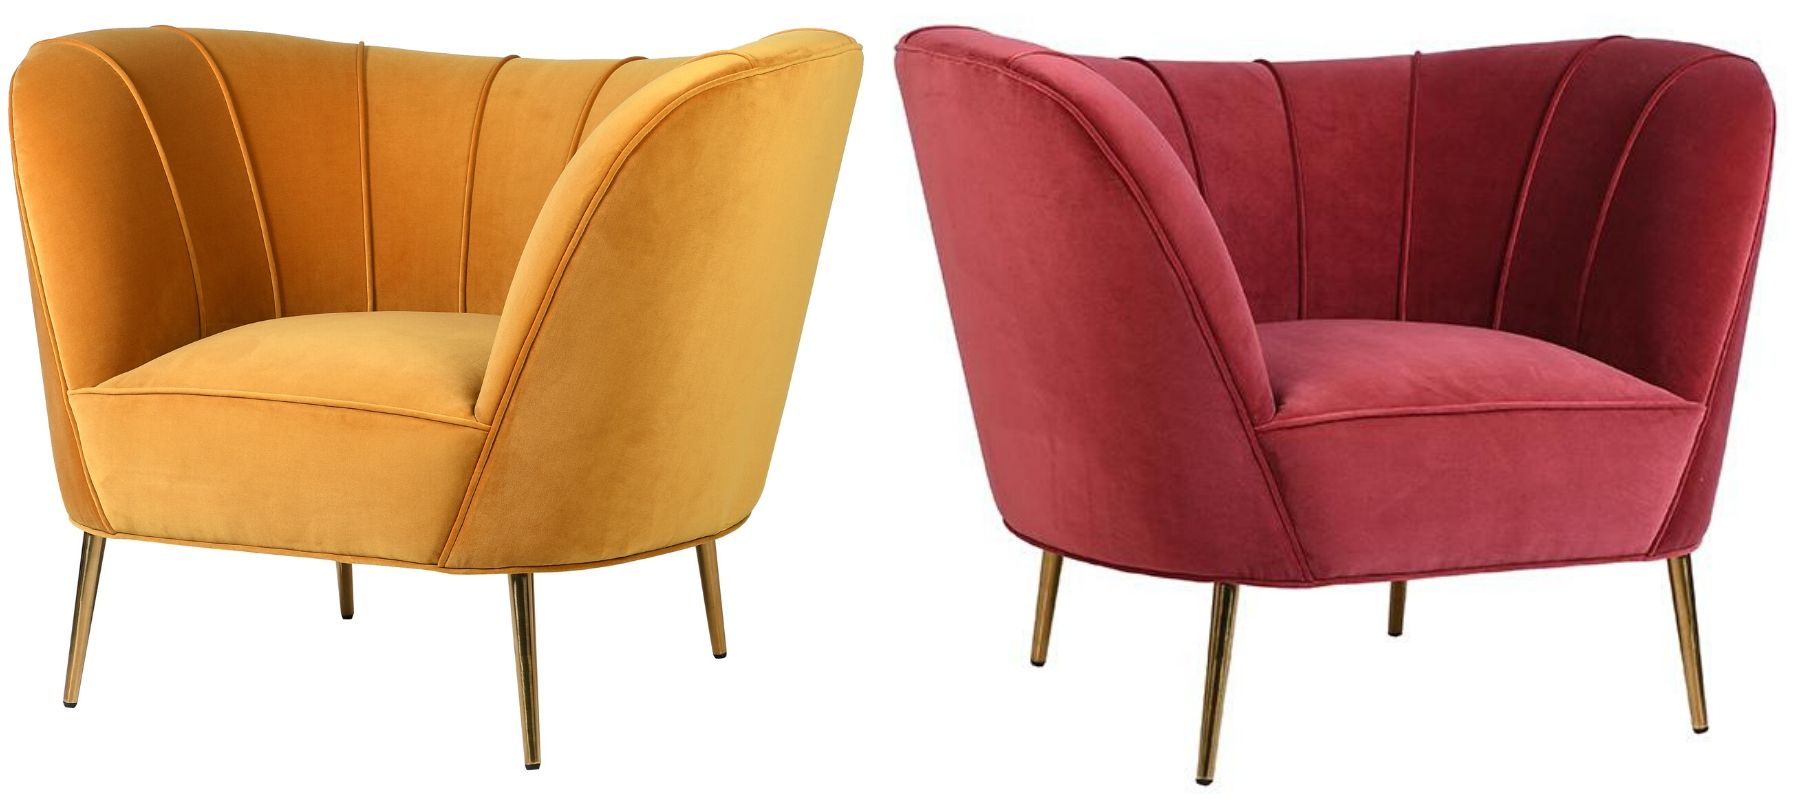 Bright yellow and dusky pink velvet armchairs with gold metal legs